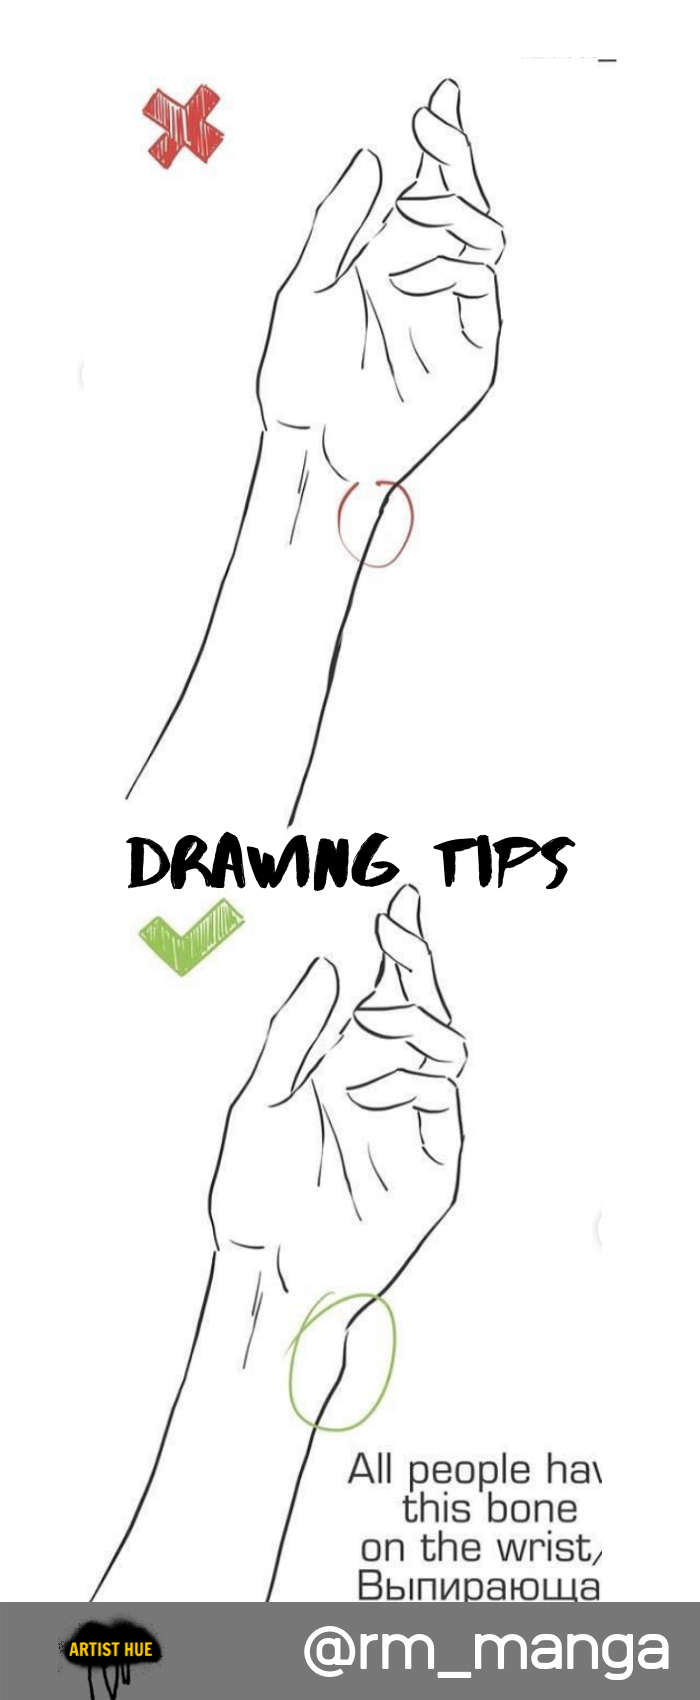 Drawing tips | How to draw hands | How to draw for beginners | beginner guide for artists |